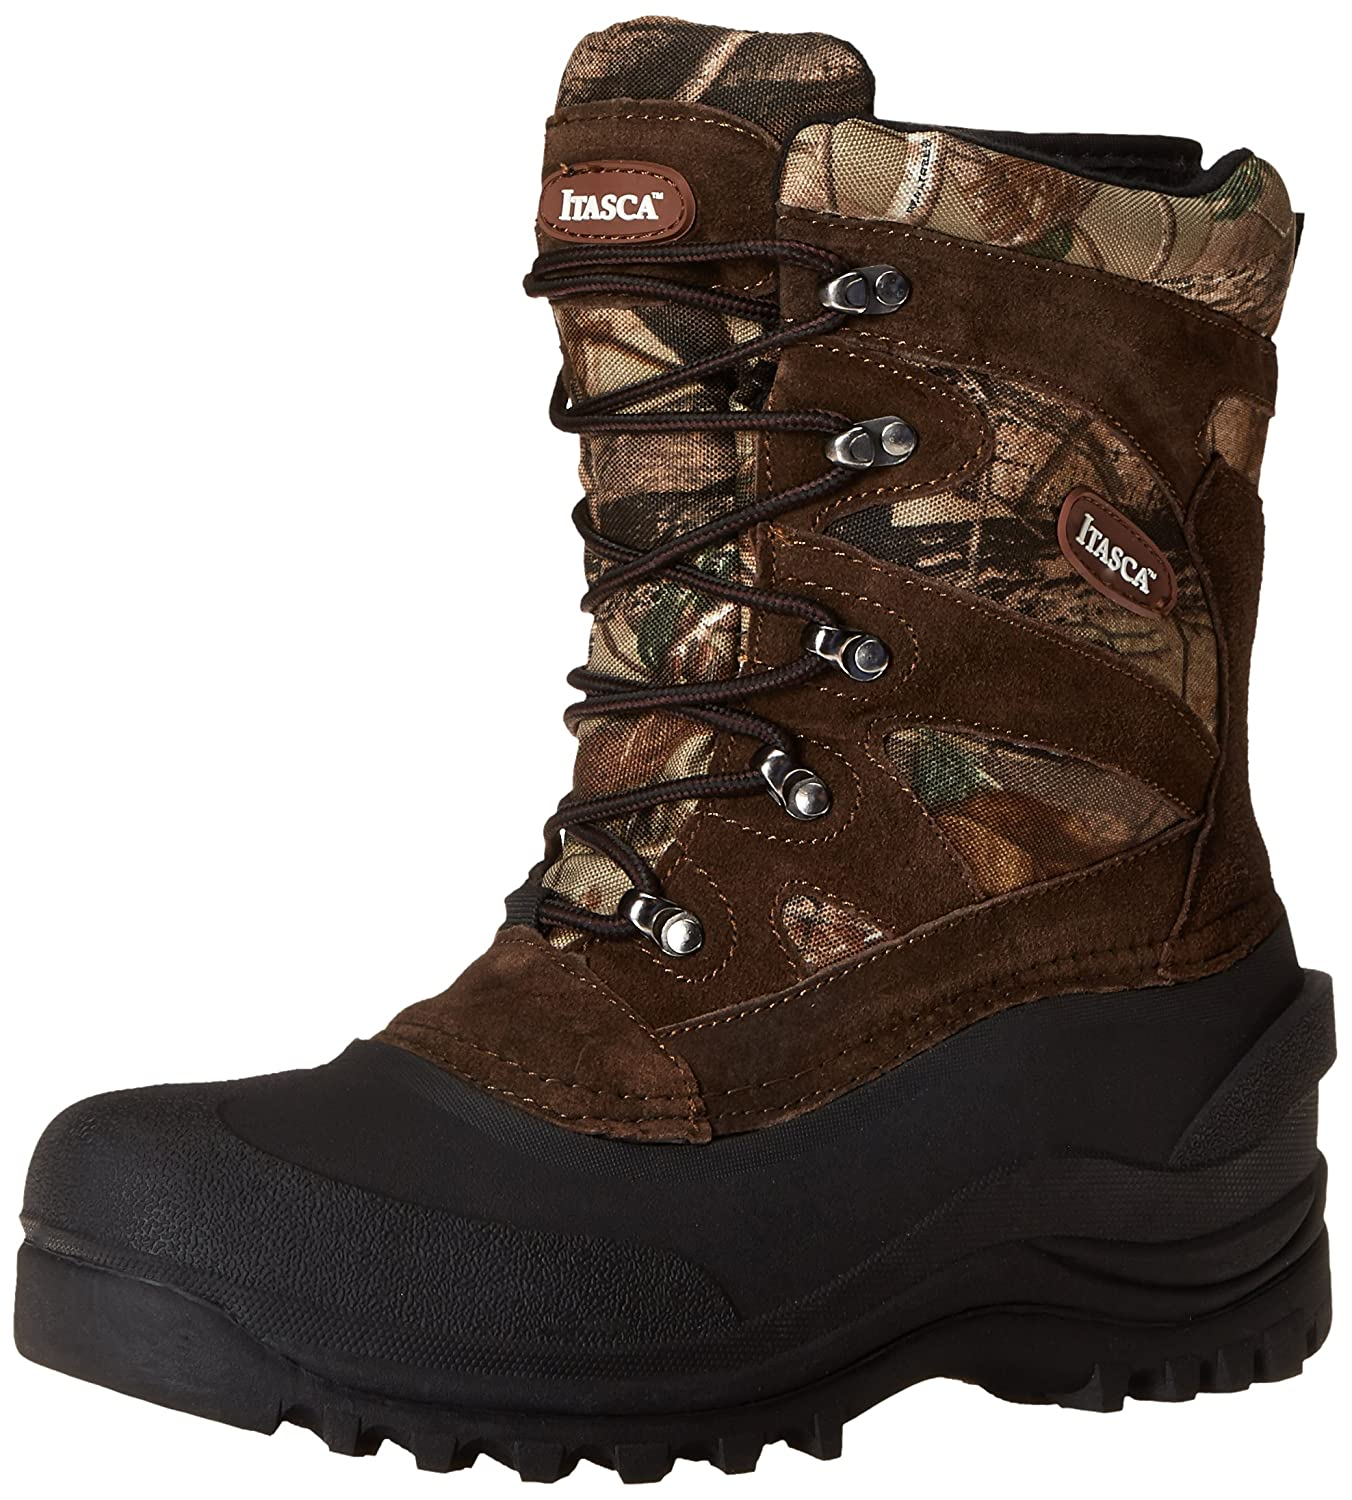 Itasca Men's Ketchikan CM RT Ski Boot Itasca Footwear Ketchikan Camo RT-M